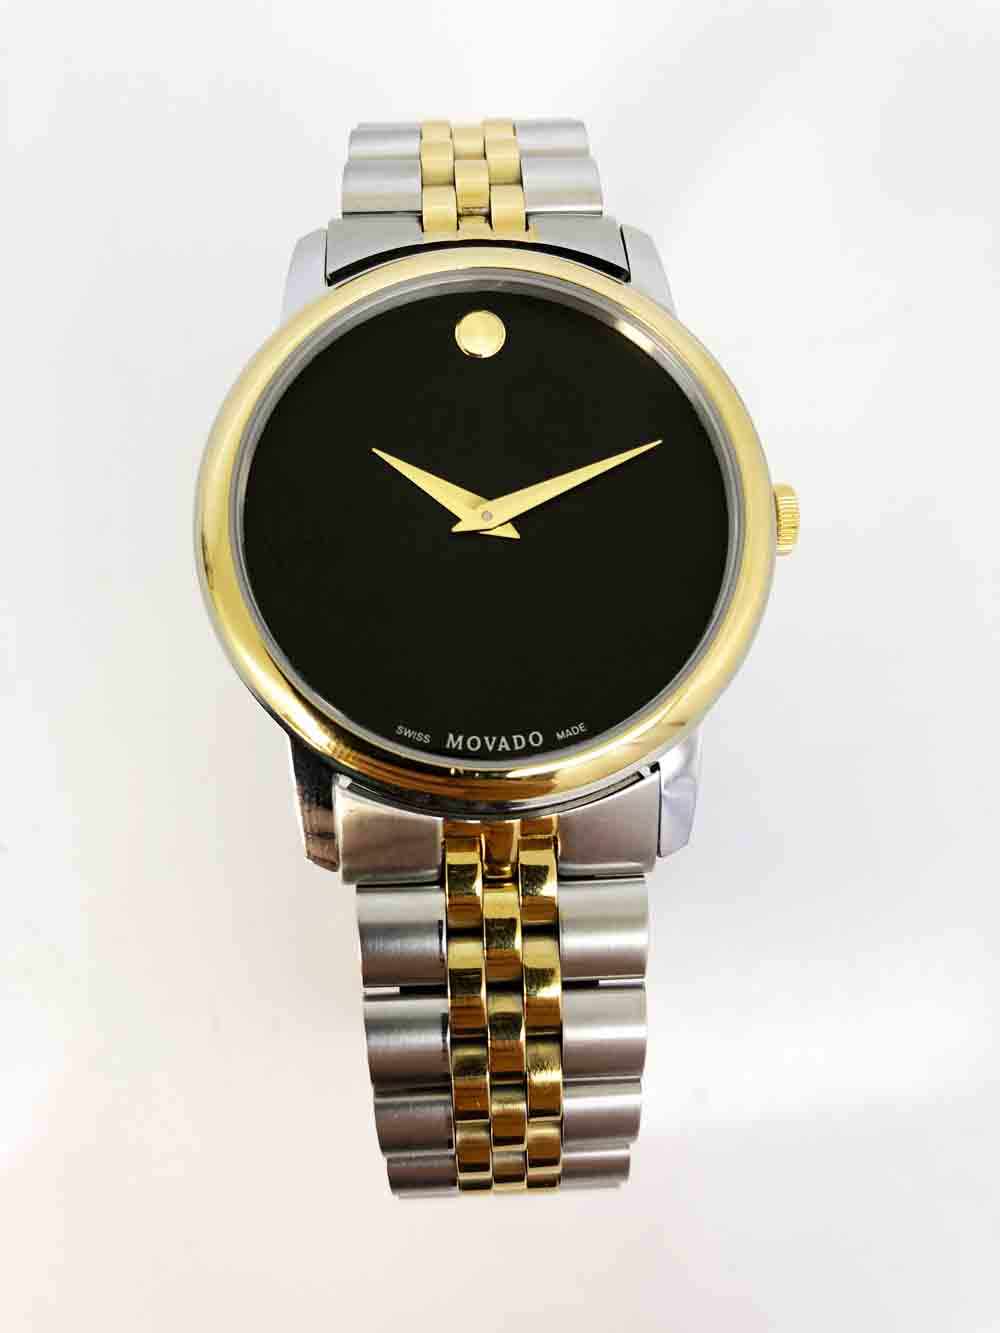 dong-ho-movado-swiss-made-nam-mv-m01-1